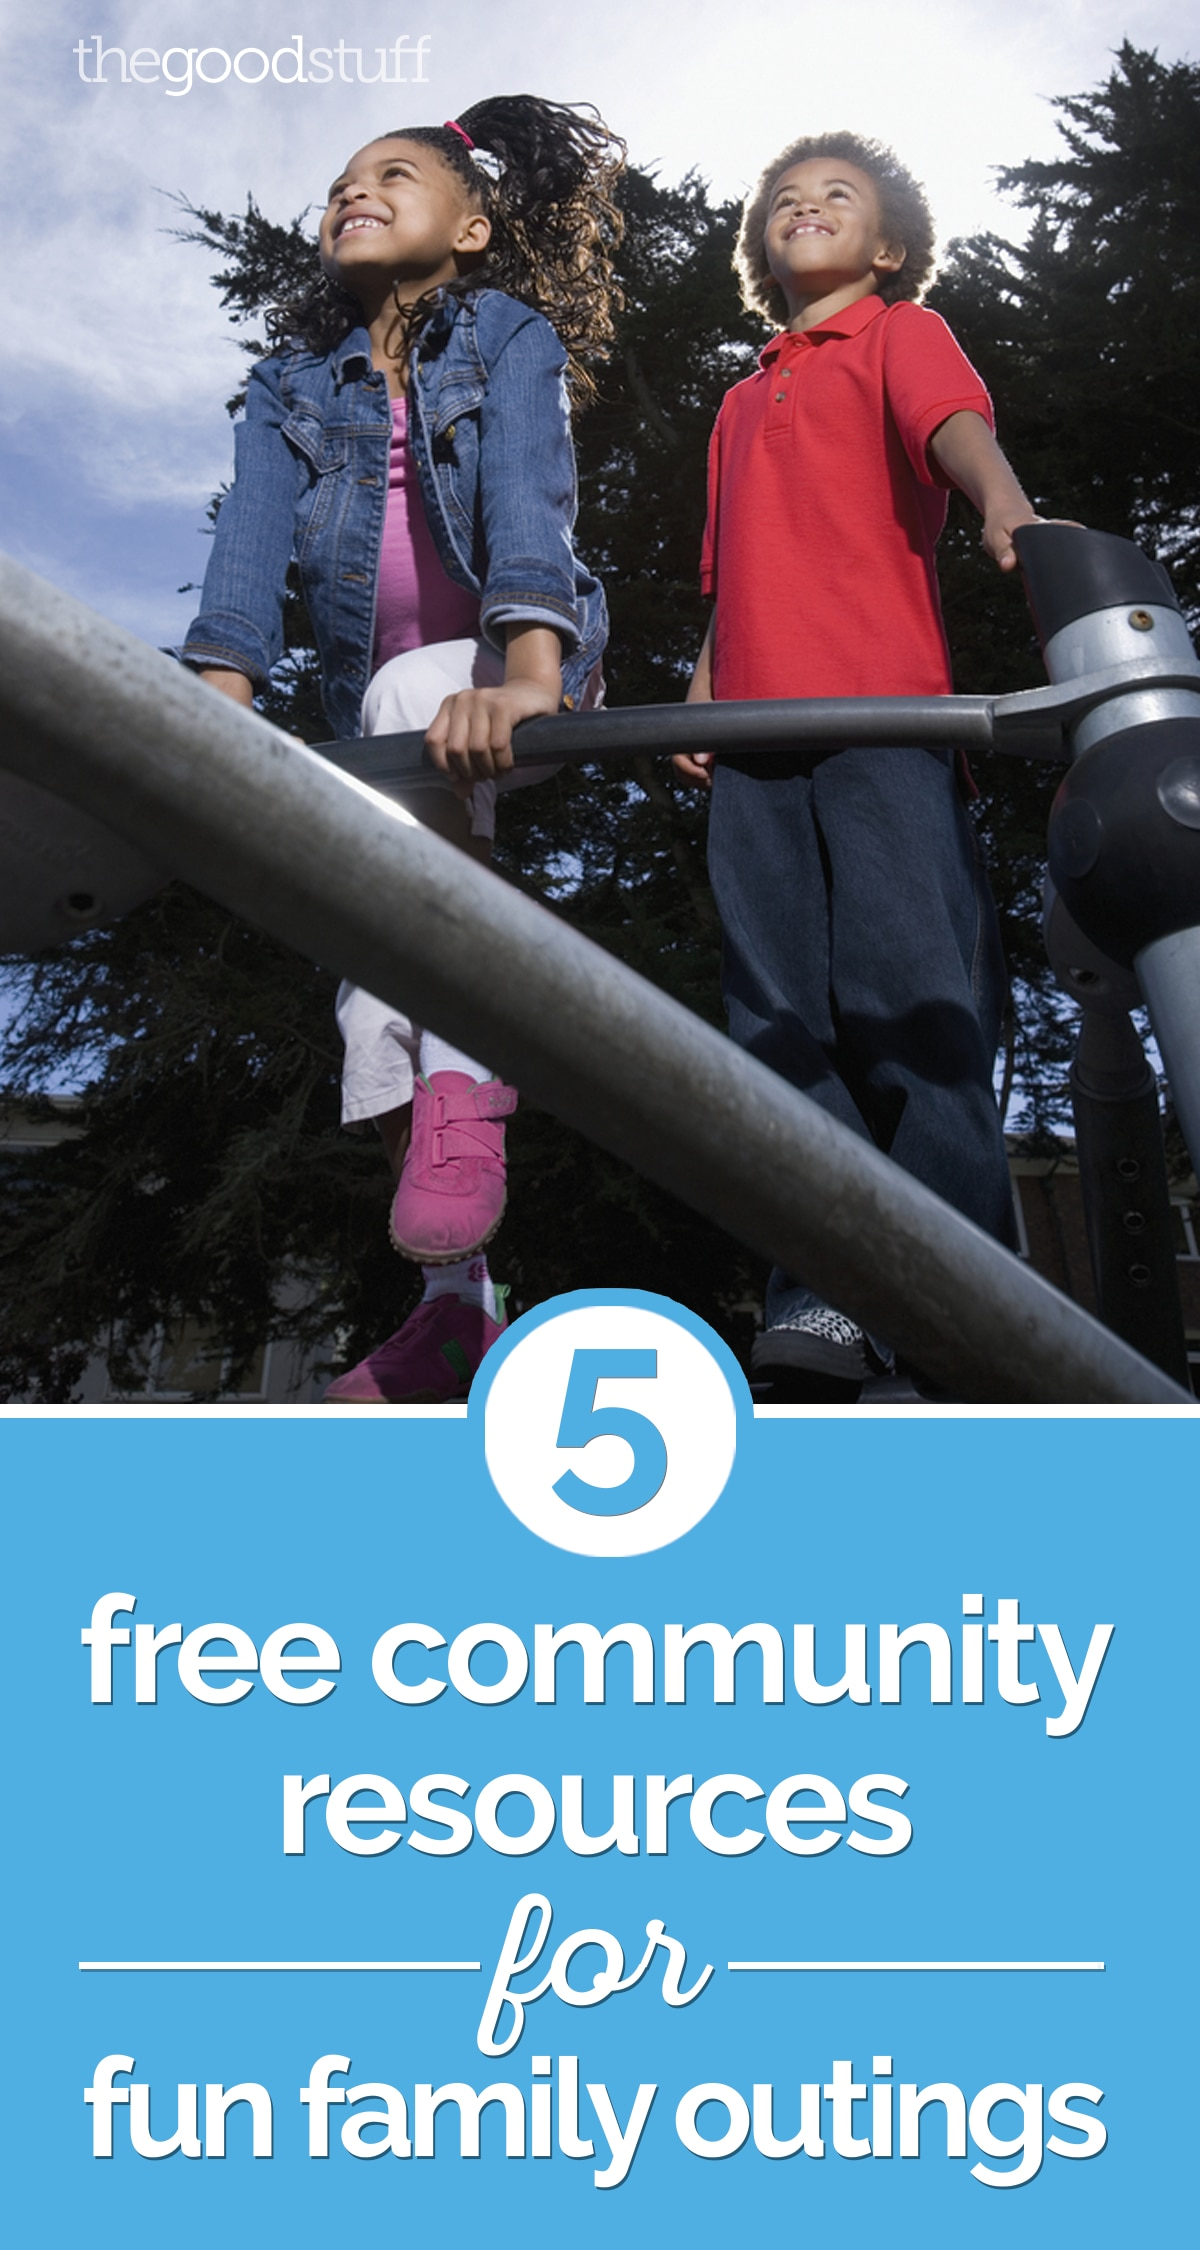 5 Free Community Resources for Fun Family Outings | thegoodstuff